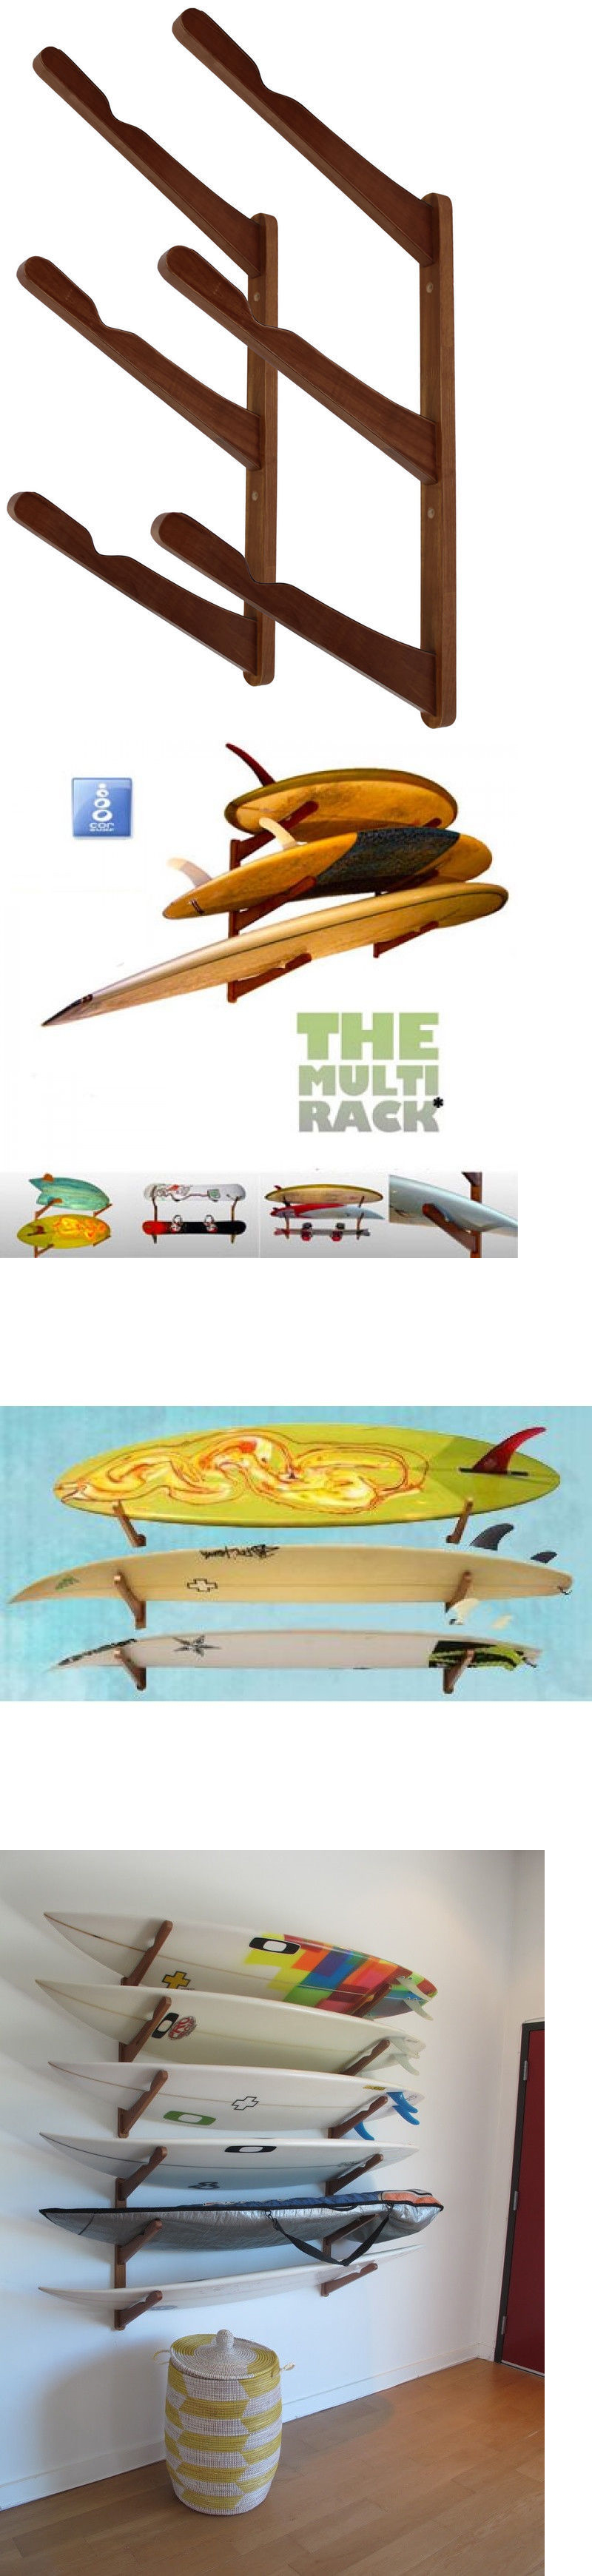 events display fin the racks home surf surfboard rack best storage and wall en wooden offers pica shop for